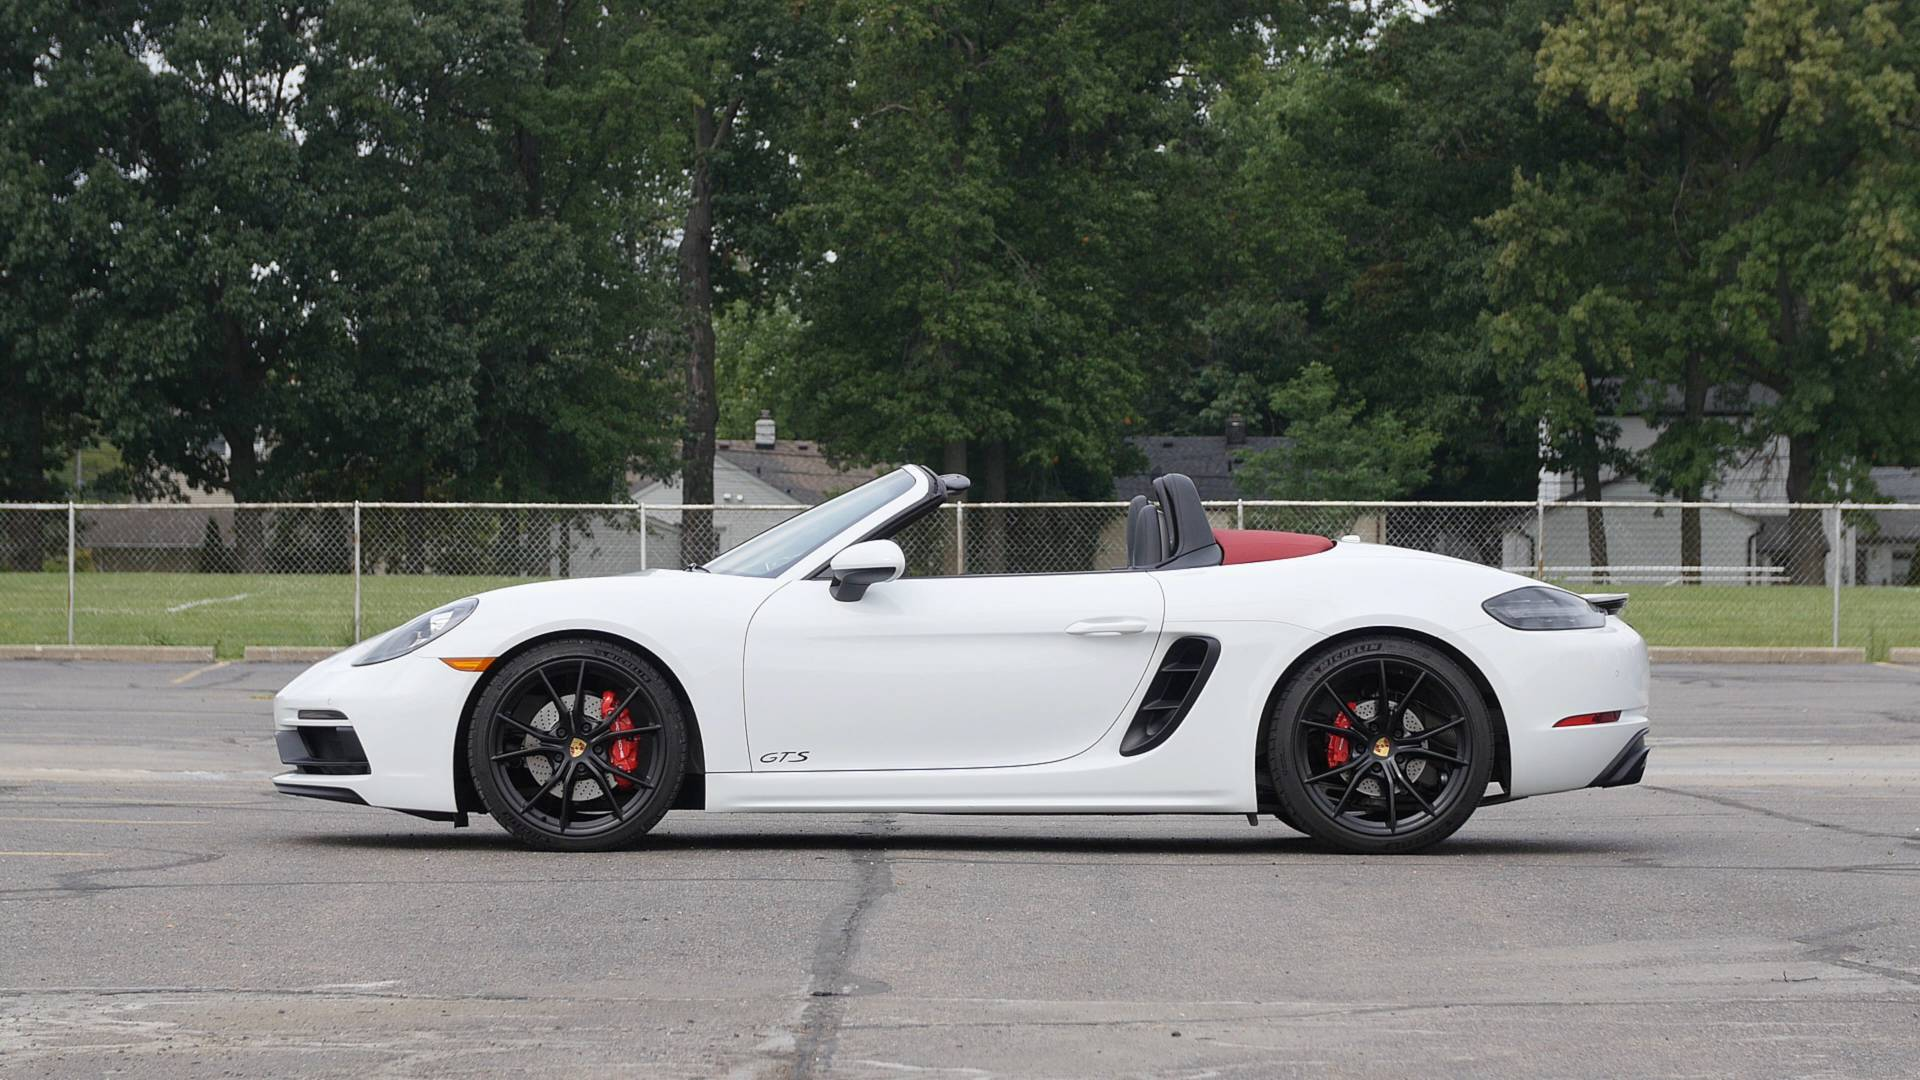 2018 Porsche 718 Boxster Gts Why Buy